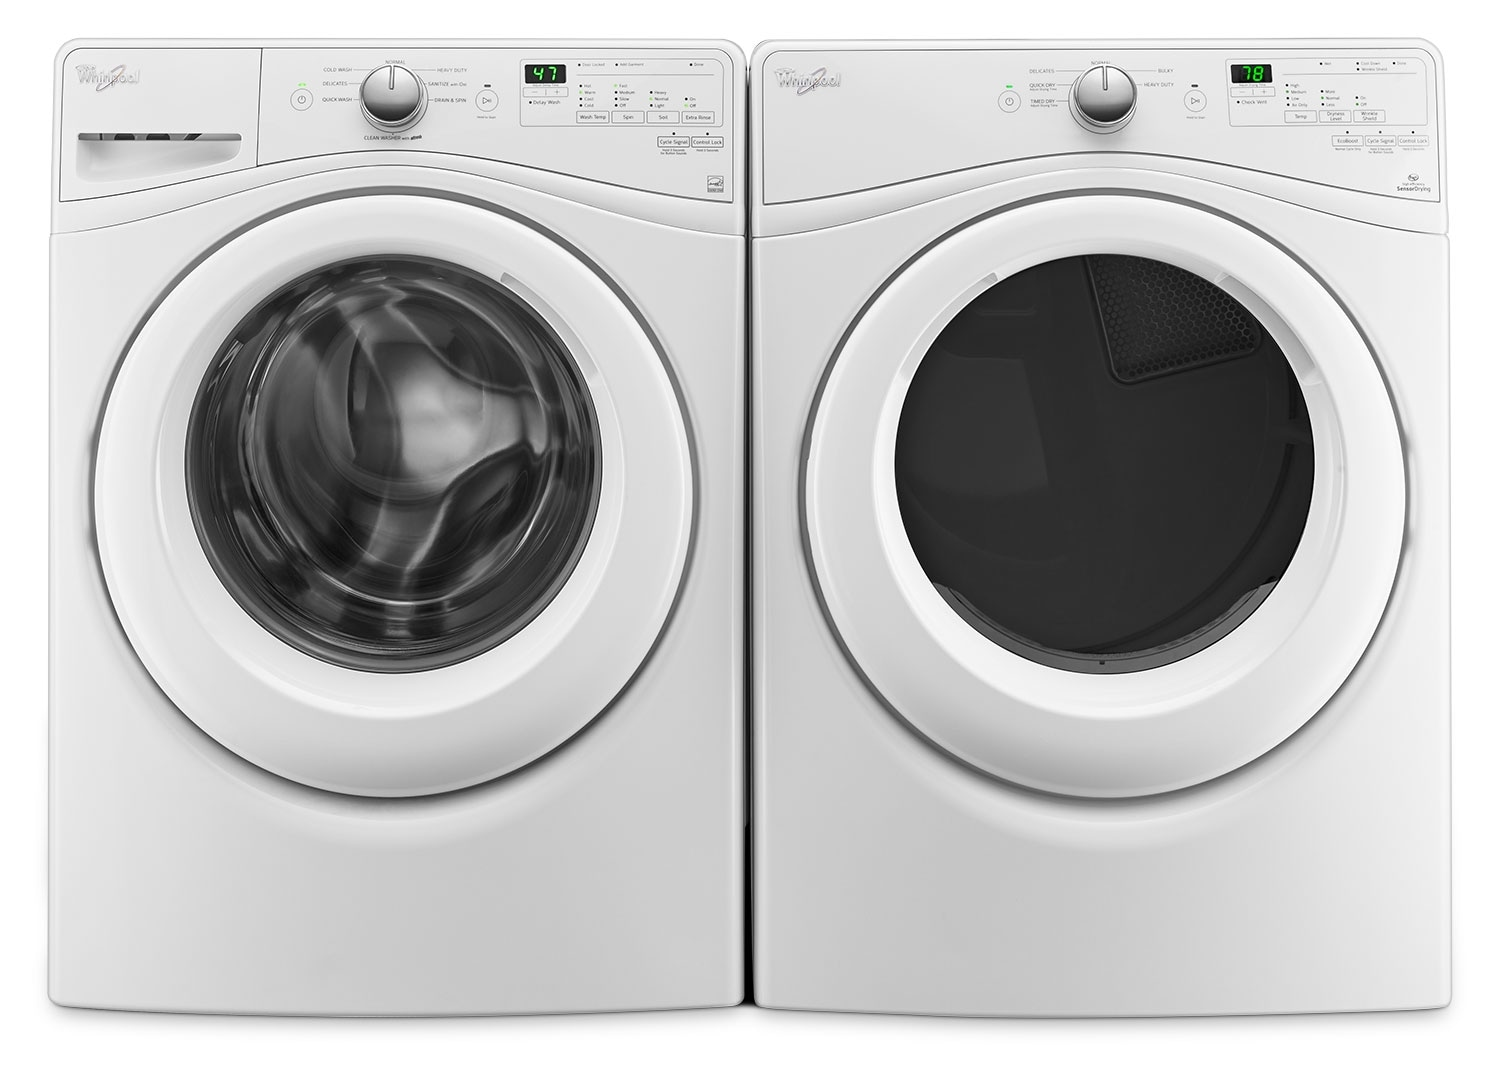 Whirlpool 5.2 Cu. Ft. Front-Load Washer and 7.4 Cu. Ft. Electric Dryer – White